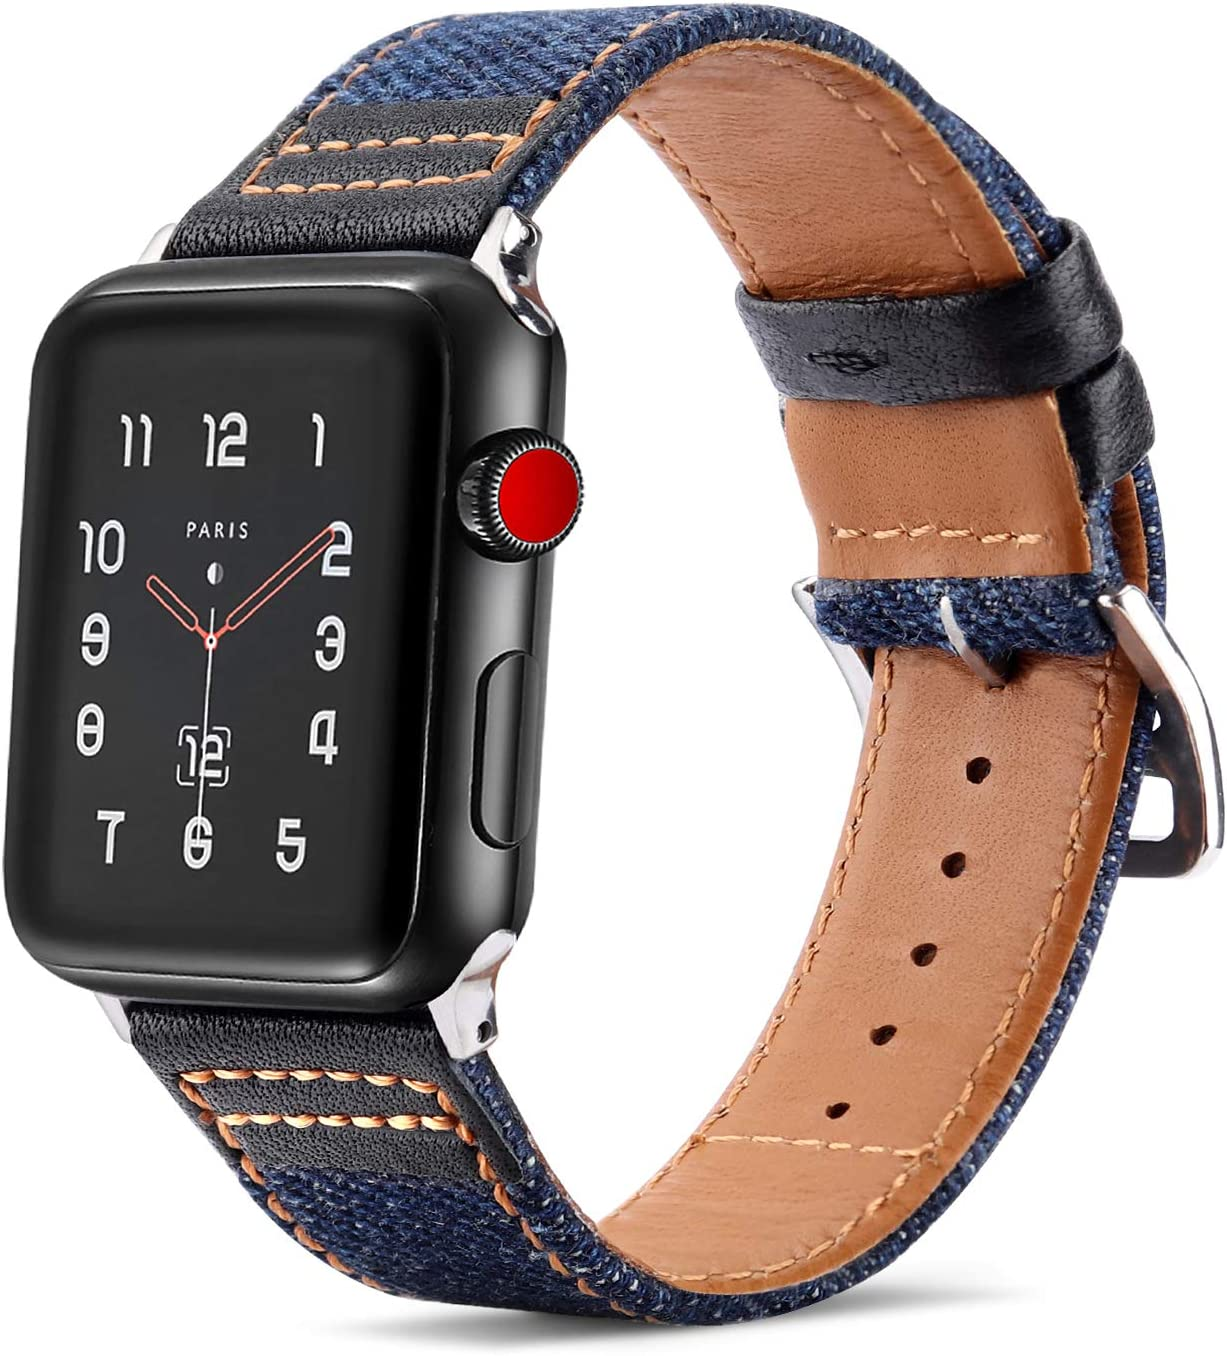 Tasikar Bands Compatible with Apple Watch Band 44mm 42mm Genuine Leather Denim Hybrid Design Replacement Band for Apple Watch Series 6/5/4/3/2/1, SE (42mm 44mm, Black)